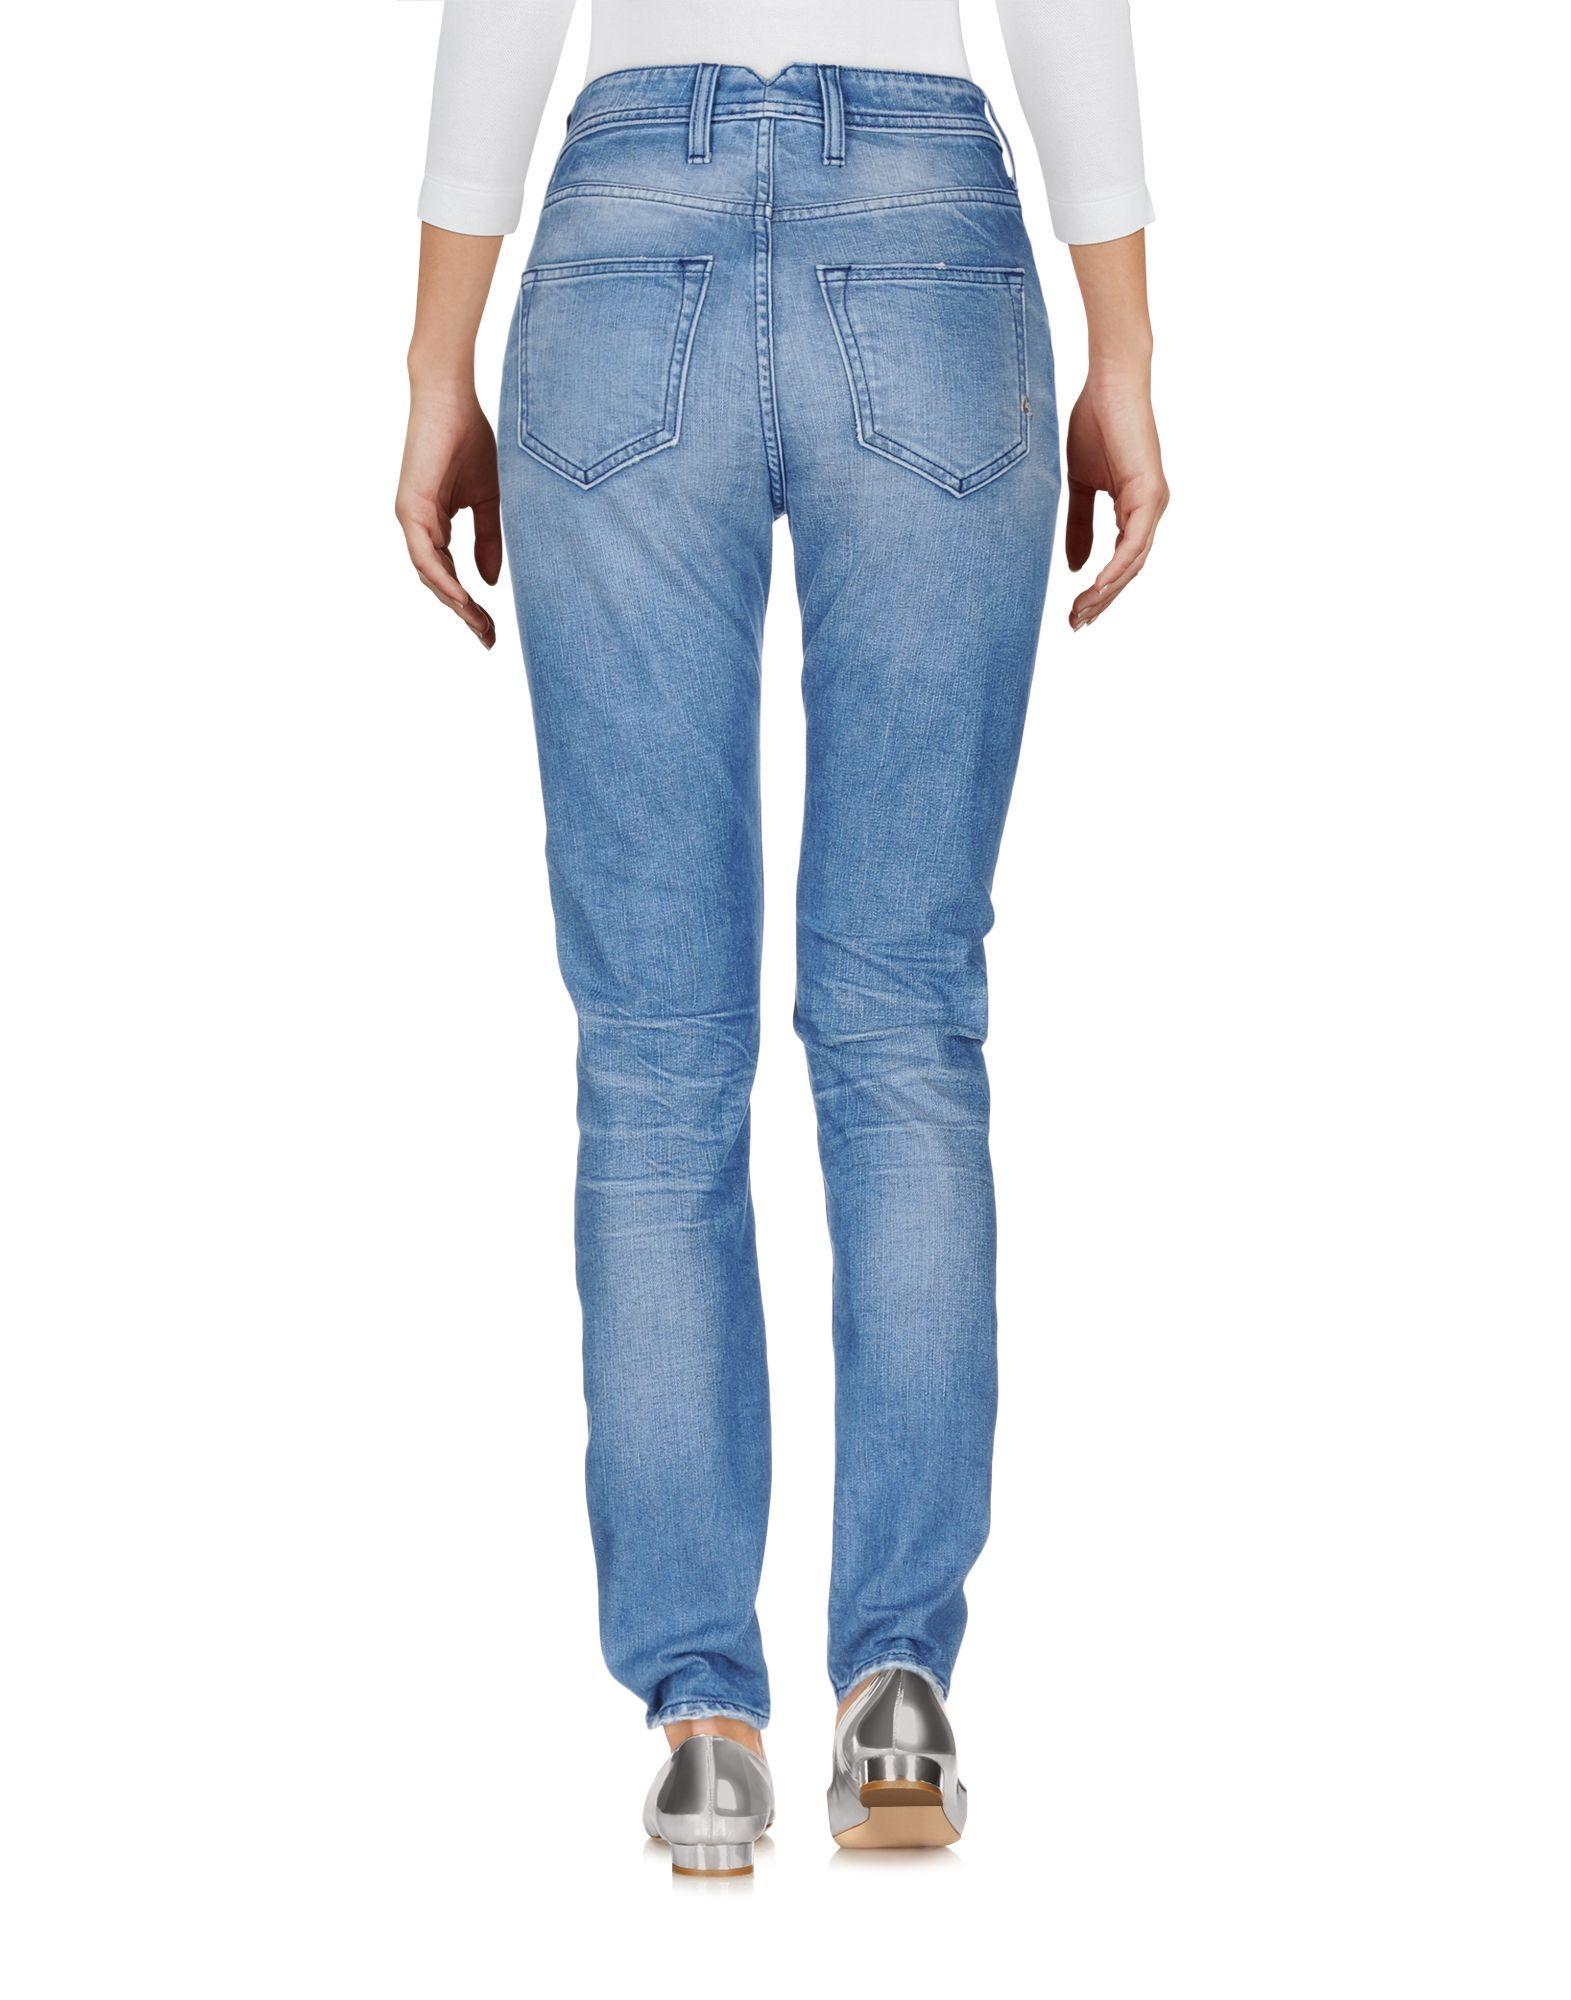 Cycle Blue Cotton Light Wash Skinny Jeans